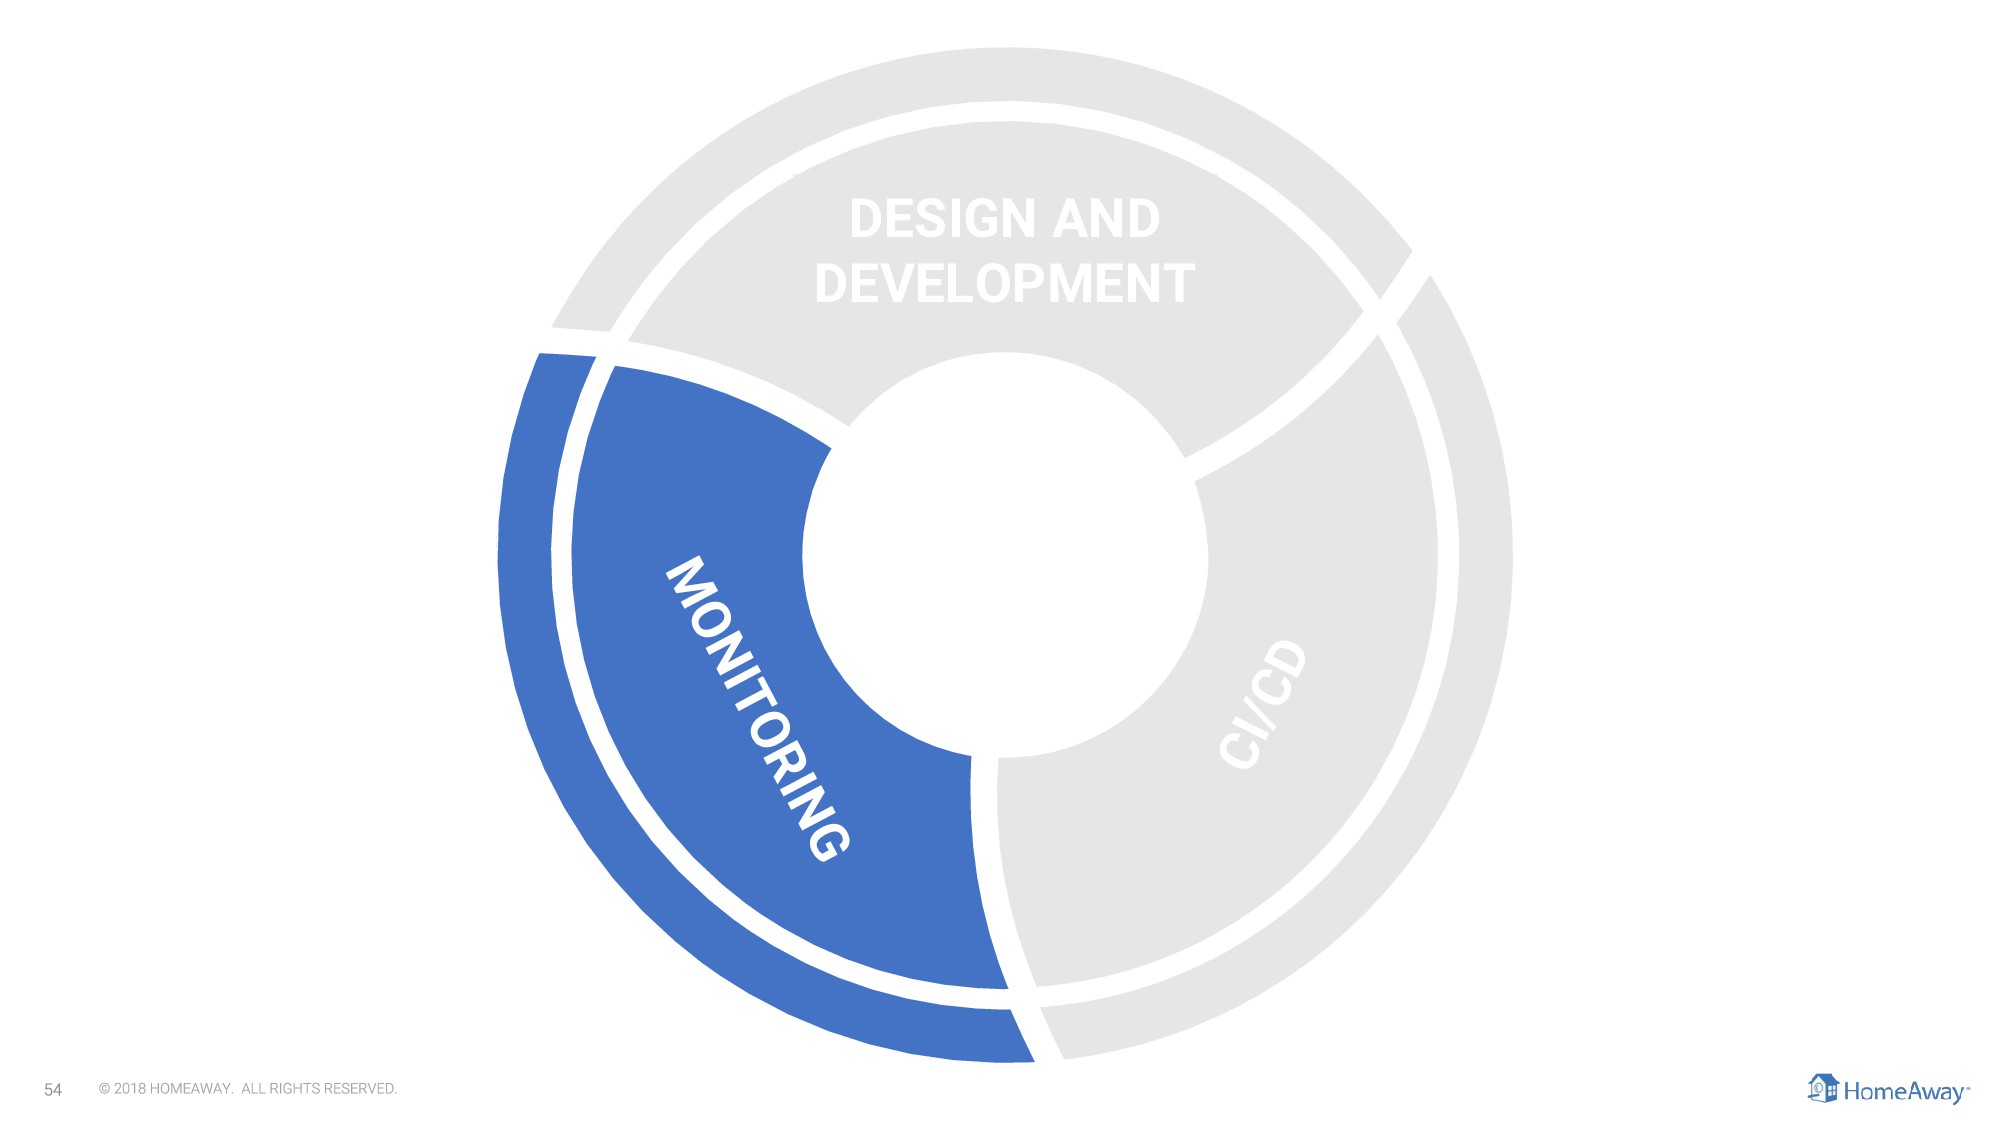 CI/CD DESIGN AND DEVELOPMENT MONITORING